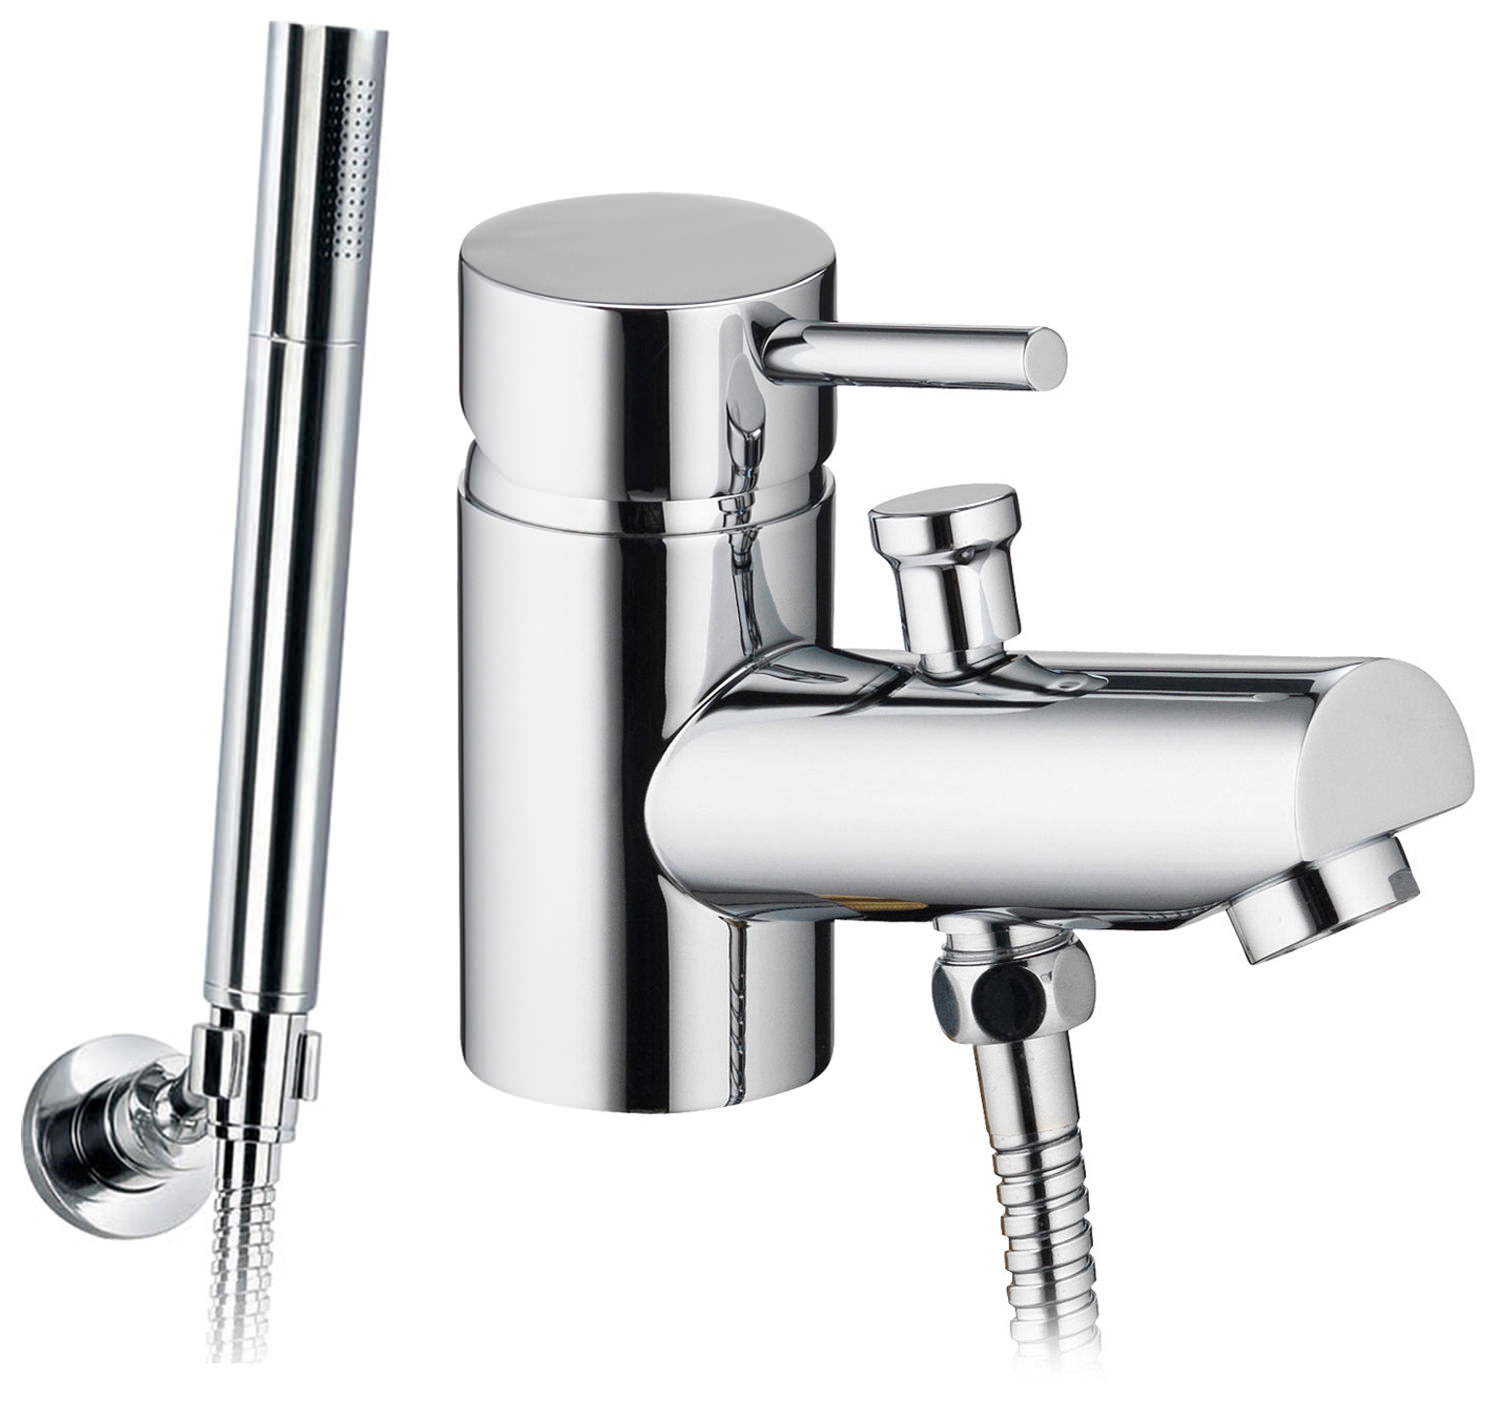 pura xcite mono bath shower mixer tap with handset and hose. Black Bedroom Furniture Sets. Home Design Ideas